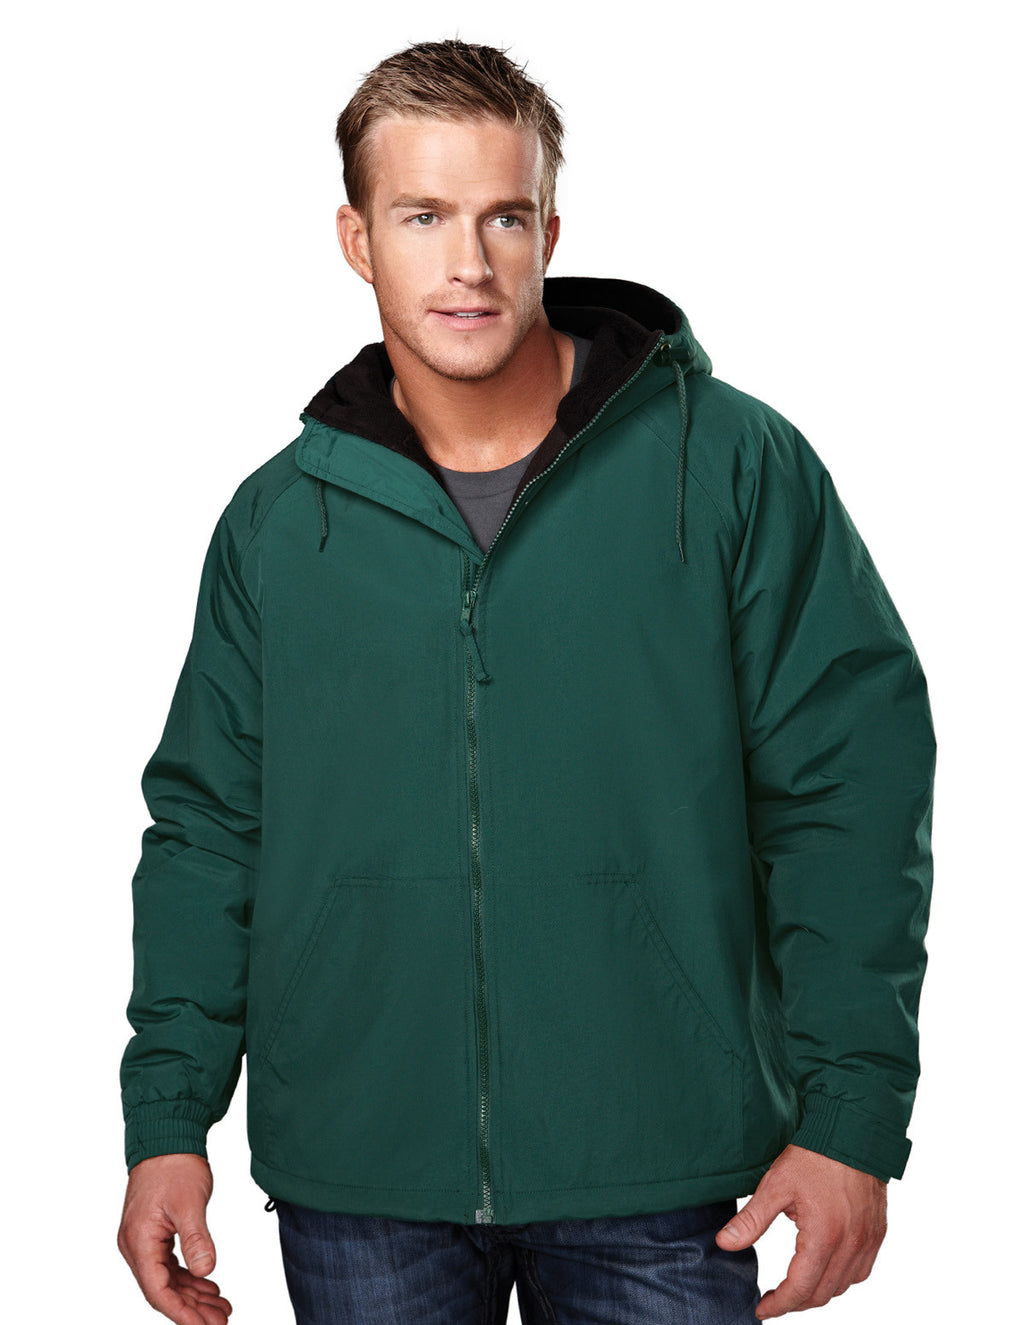 Tri-Mountain Fleece Lined Hooded Jacket-1